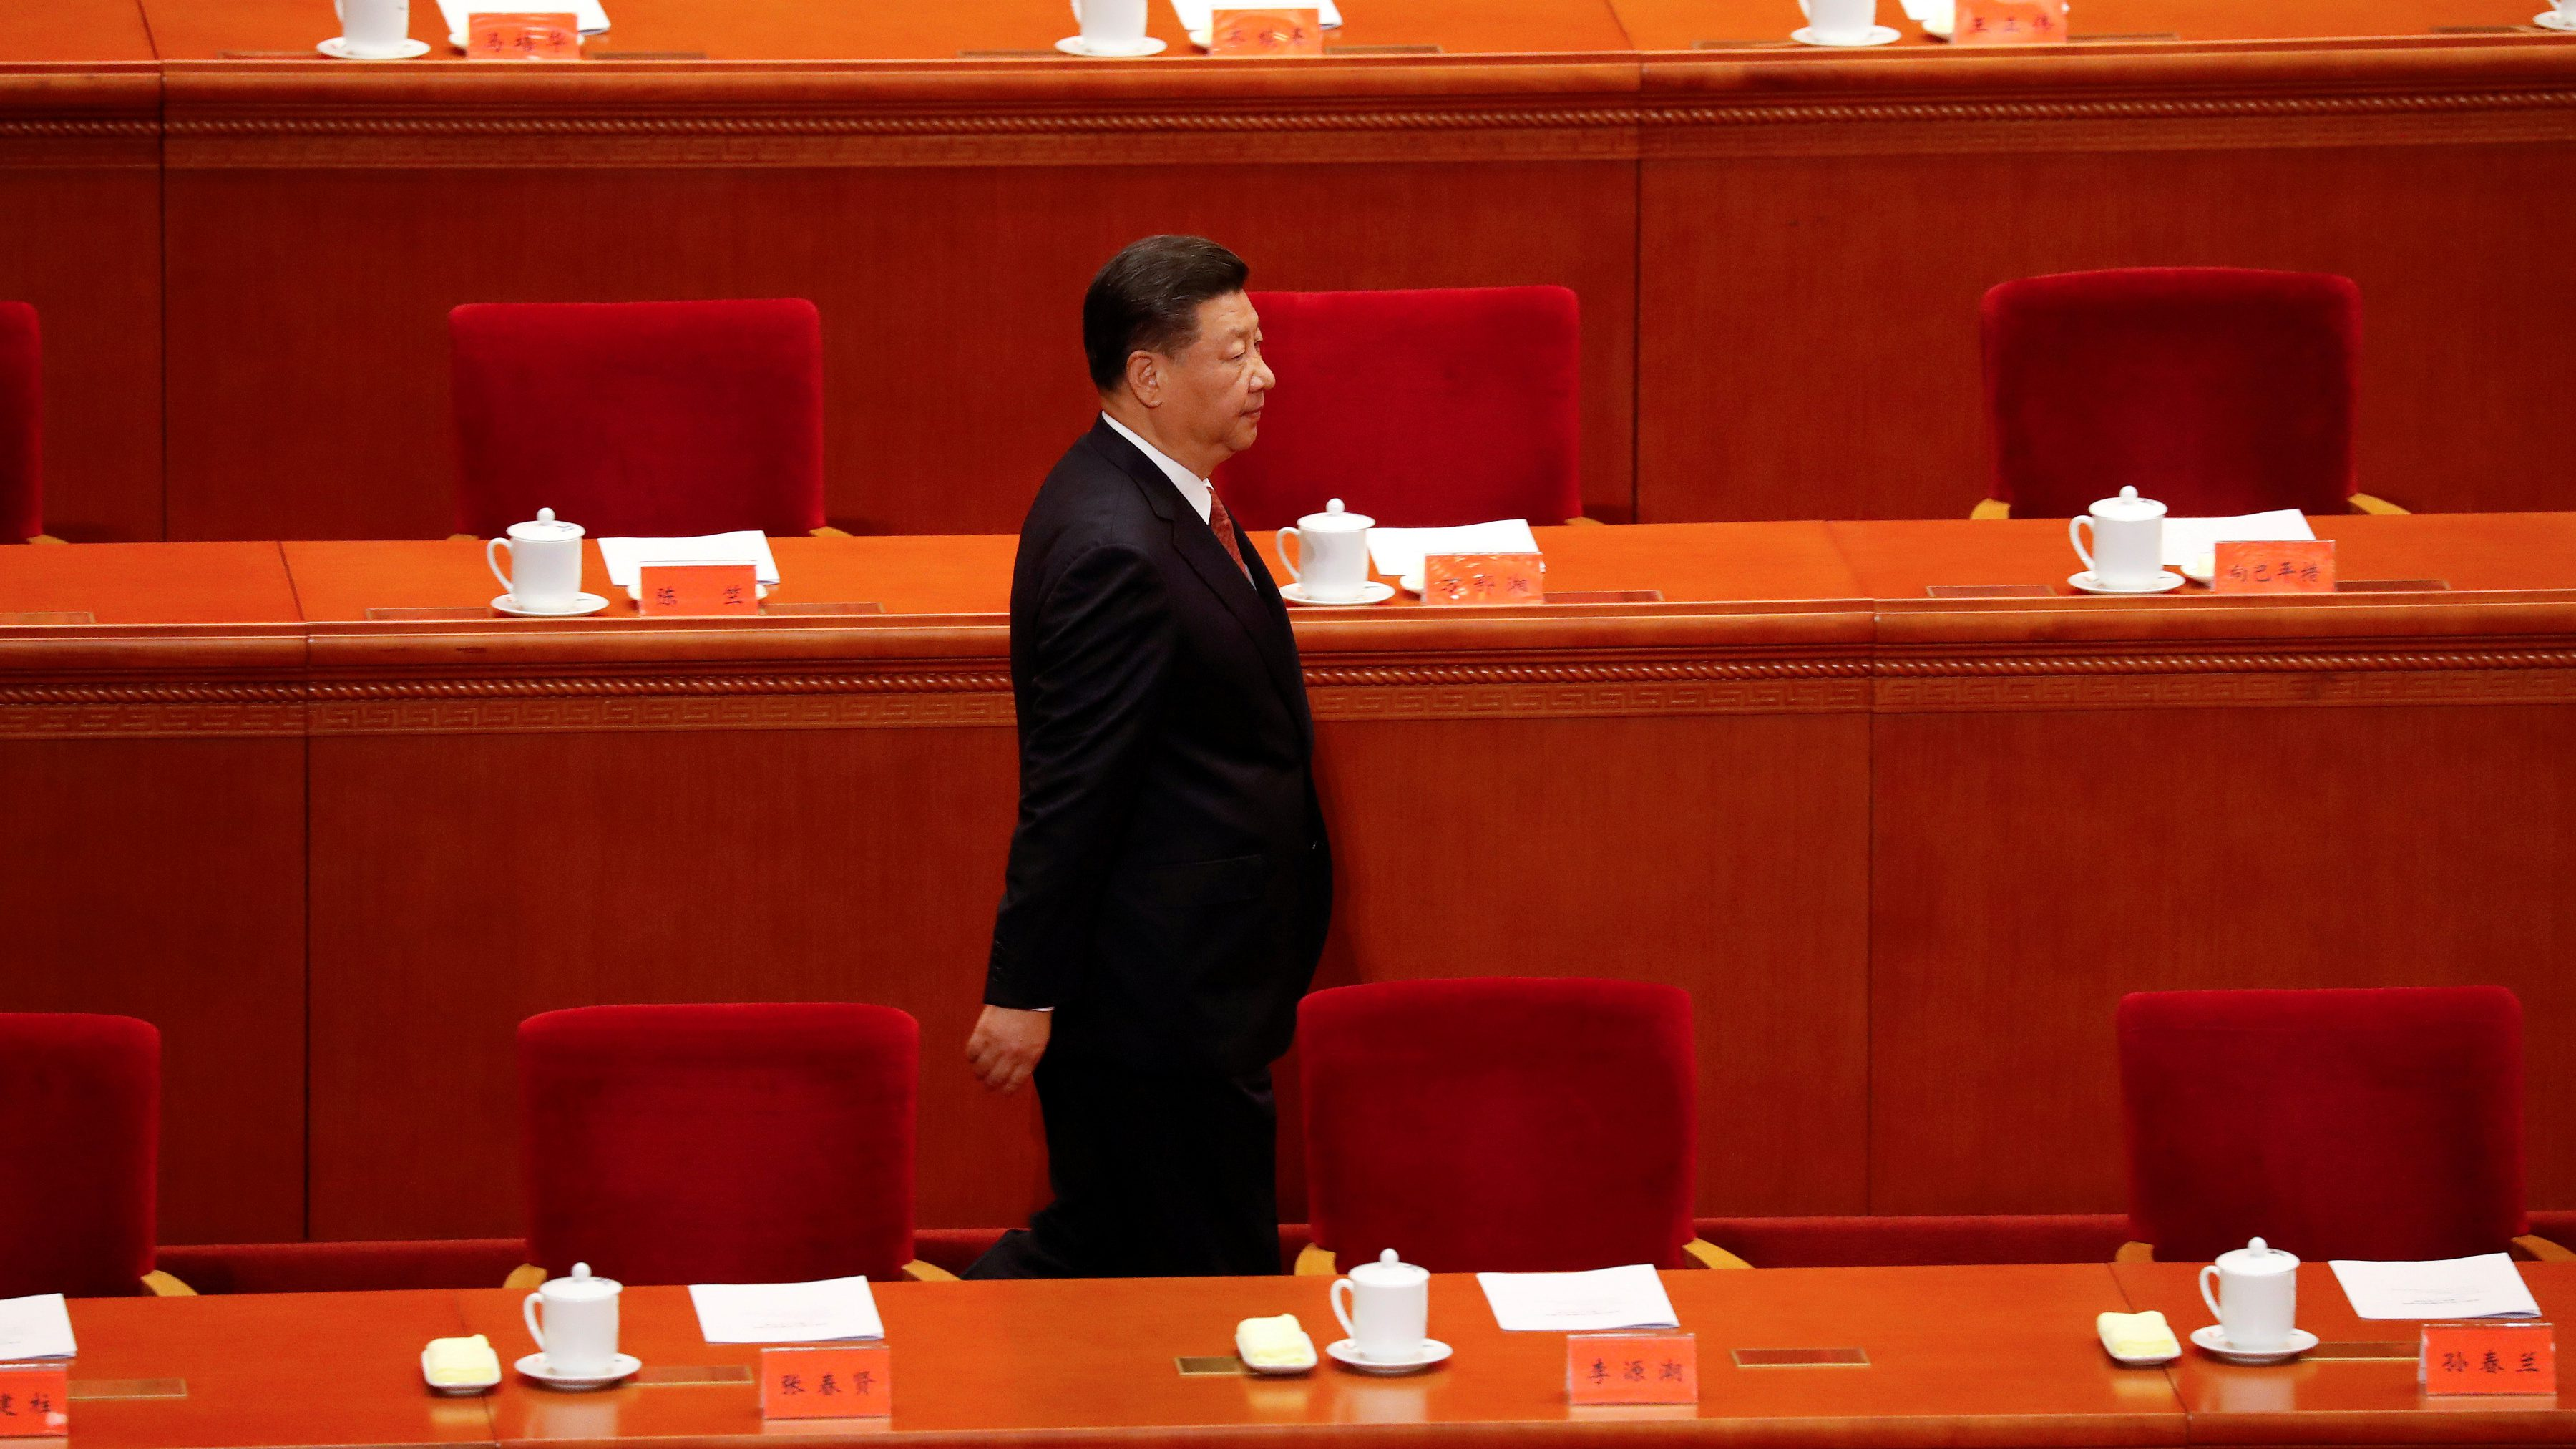 China's President Xi Jinping arrives for the ceremony to mark the 90th anniversary of the founding of the China's People's Liberation Army at the Great Hall of the People in Beijing, China August 1, 2017.